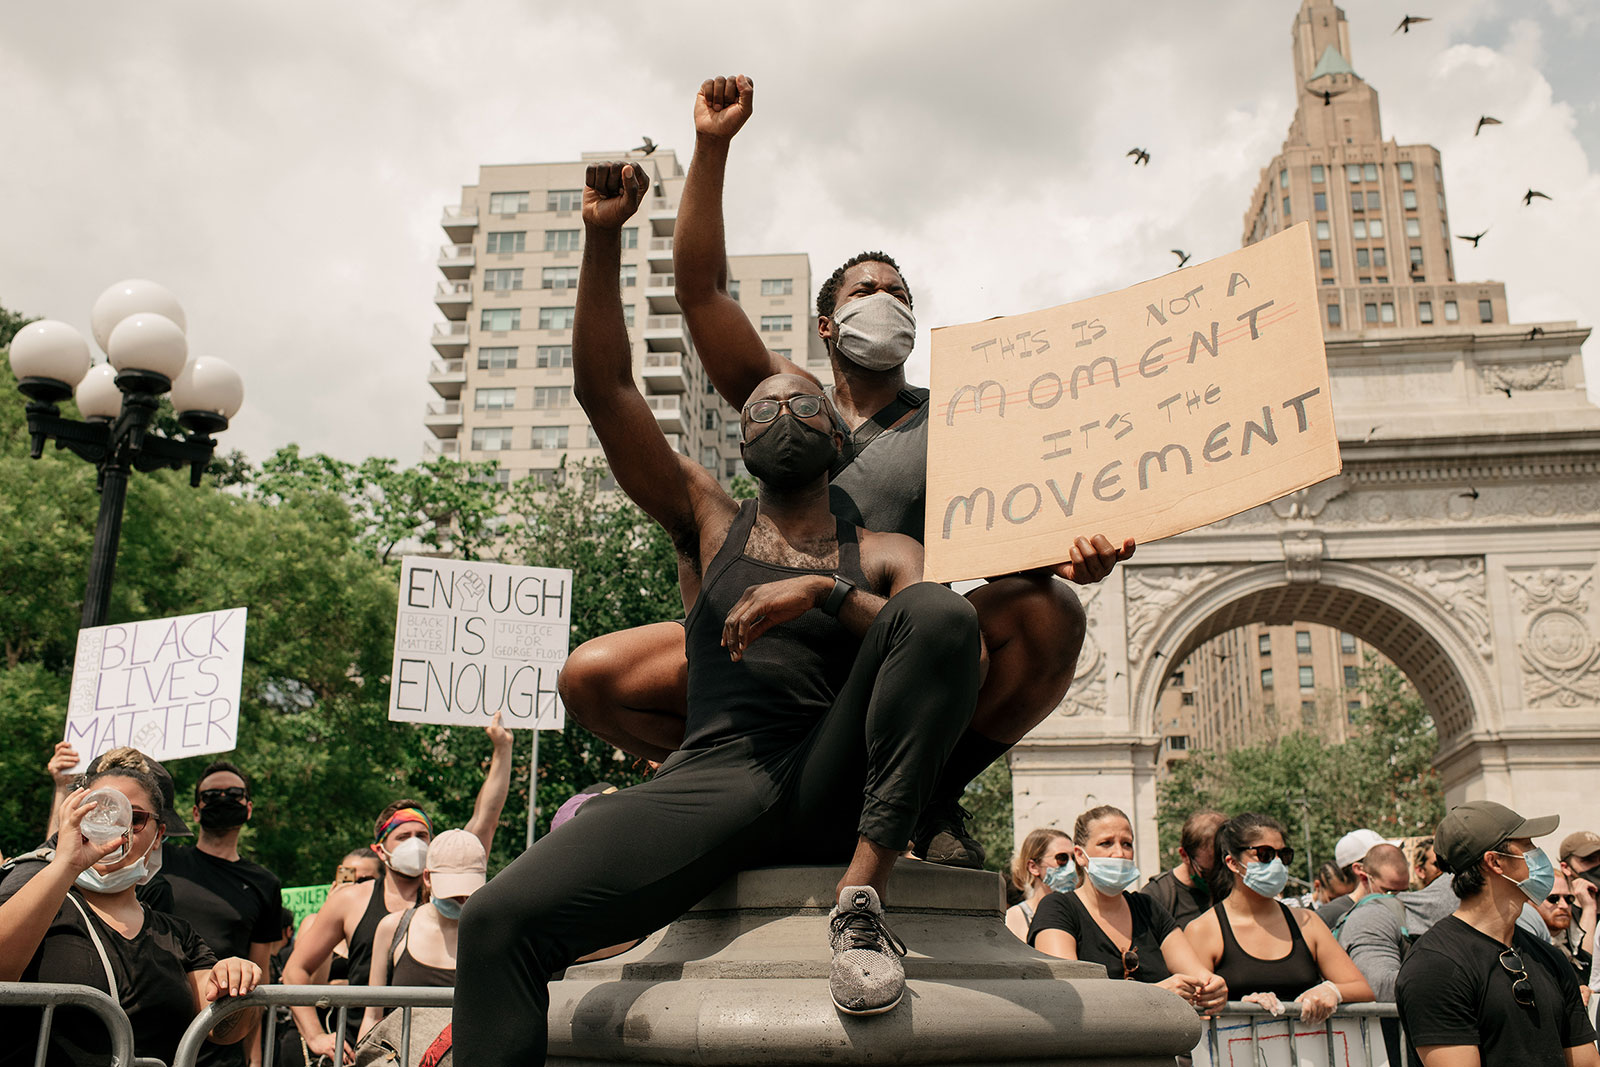 Demonstrators wear face masks during a protest at Washington Square Park in New York on Junedenouncing systemic racism and the police killings of black Americans rally in Washington Square Park in the borough of Manhattan on June 6, 2020 in New York City. This is the 12th day of protests since George Floyd died in Minneapolis police custody on May 25. (Photo by Scott Heins/Getty Images)